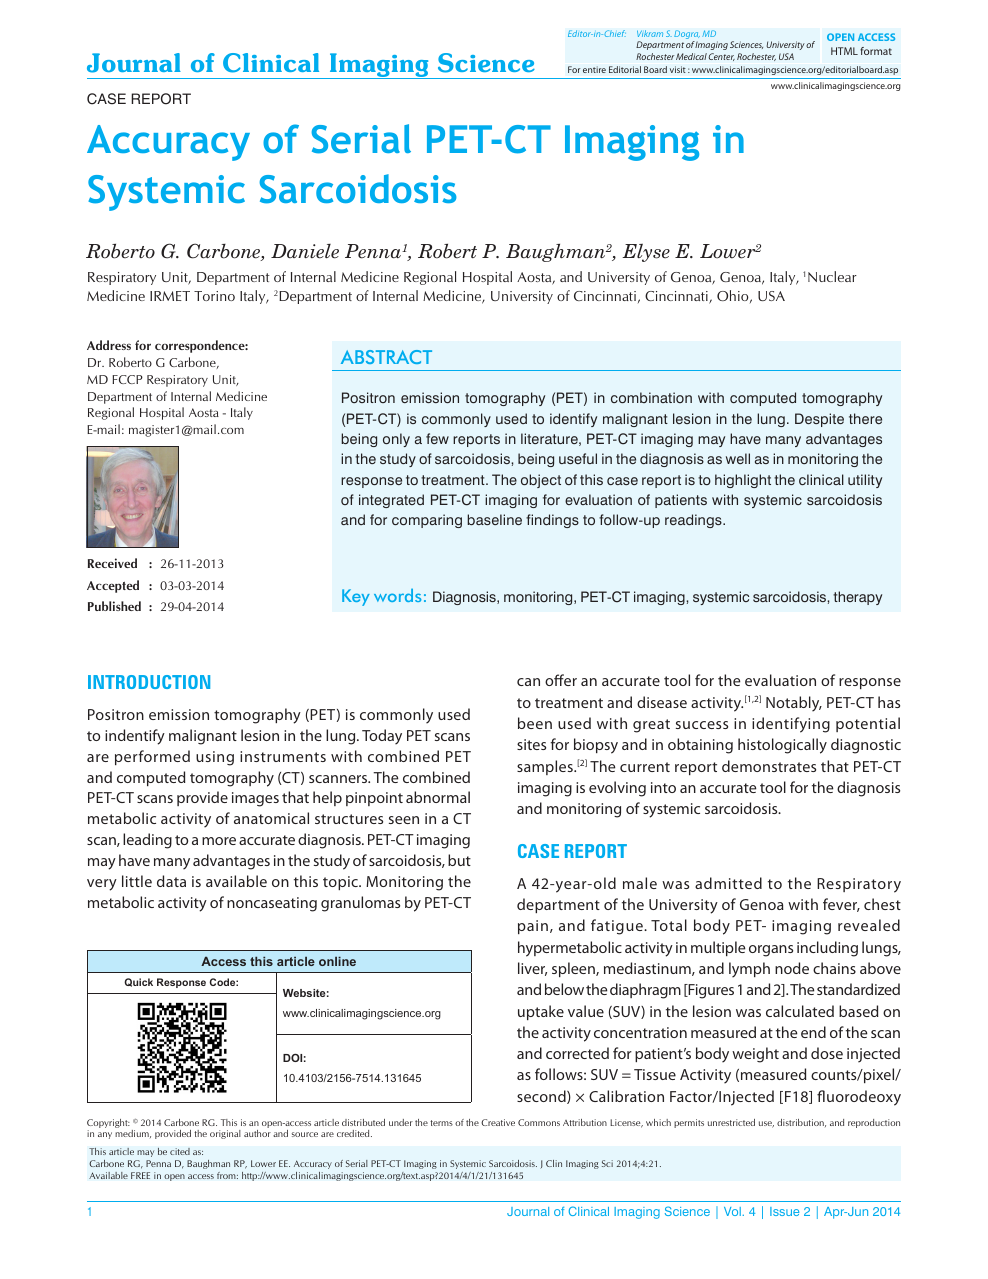 Accuracy of Serial PET-CT Imaging in Systemic Sarcoidosis